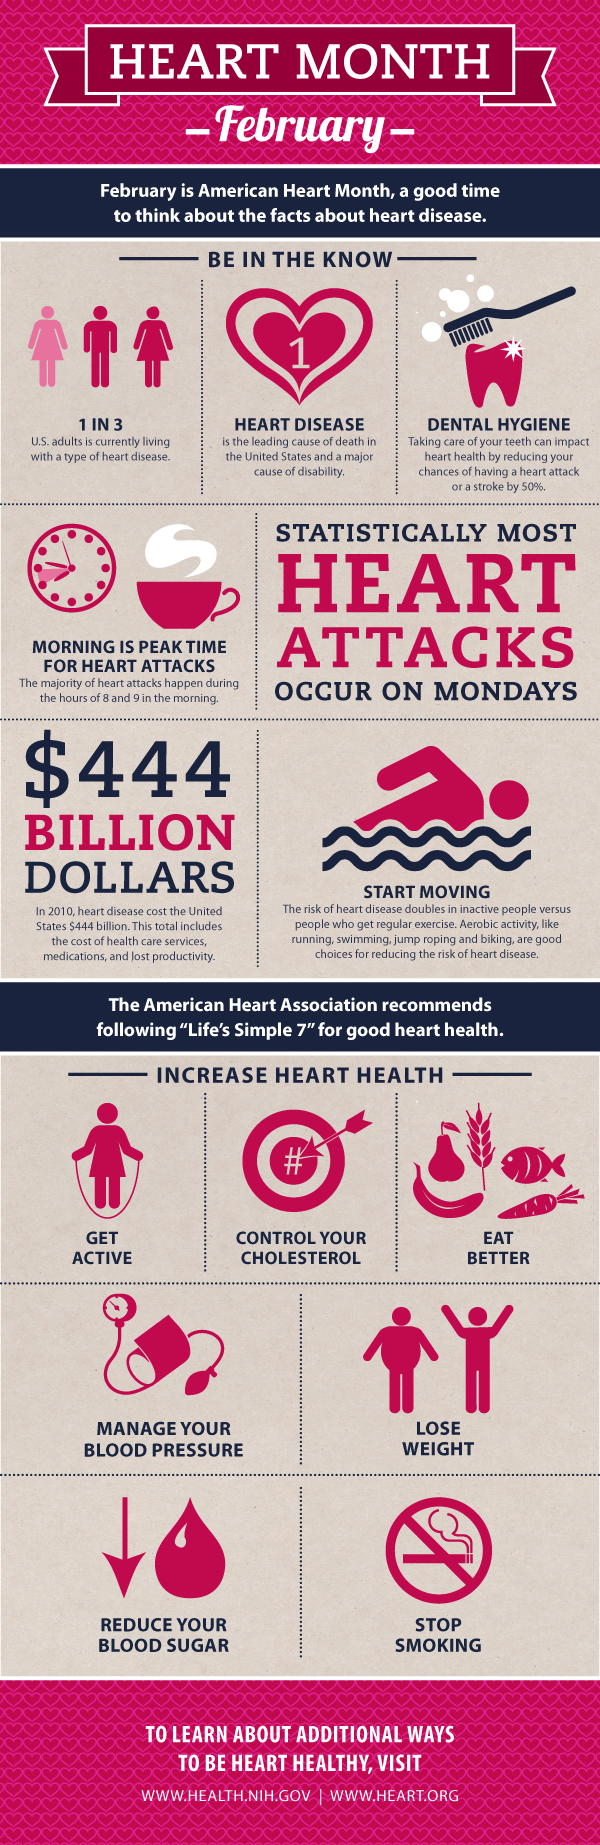 February Heart Health Awareness Month ⋆ A Two Drink Minimum |February Health Awareness